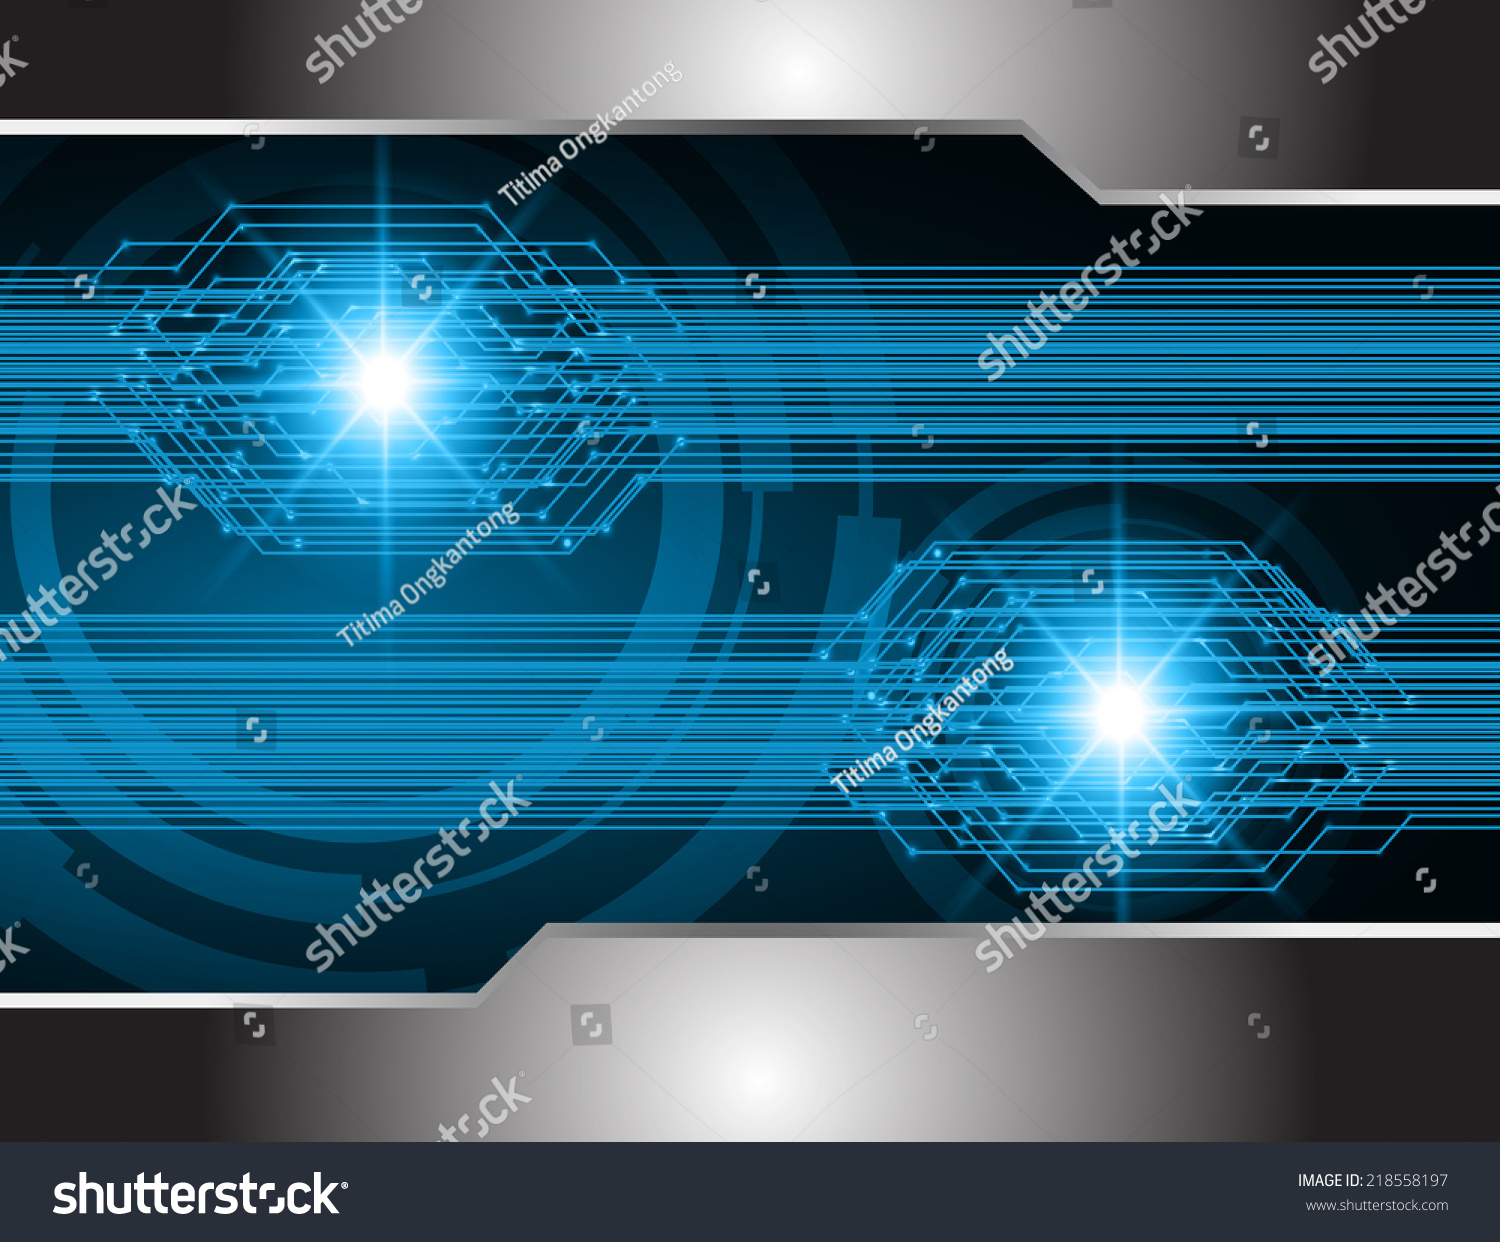 Black Light Abstract Technology Background For Computer Graphic Electric Circuits Website And Internet Circuit Board Ez Canvas